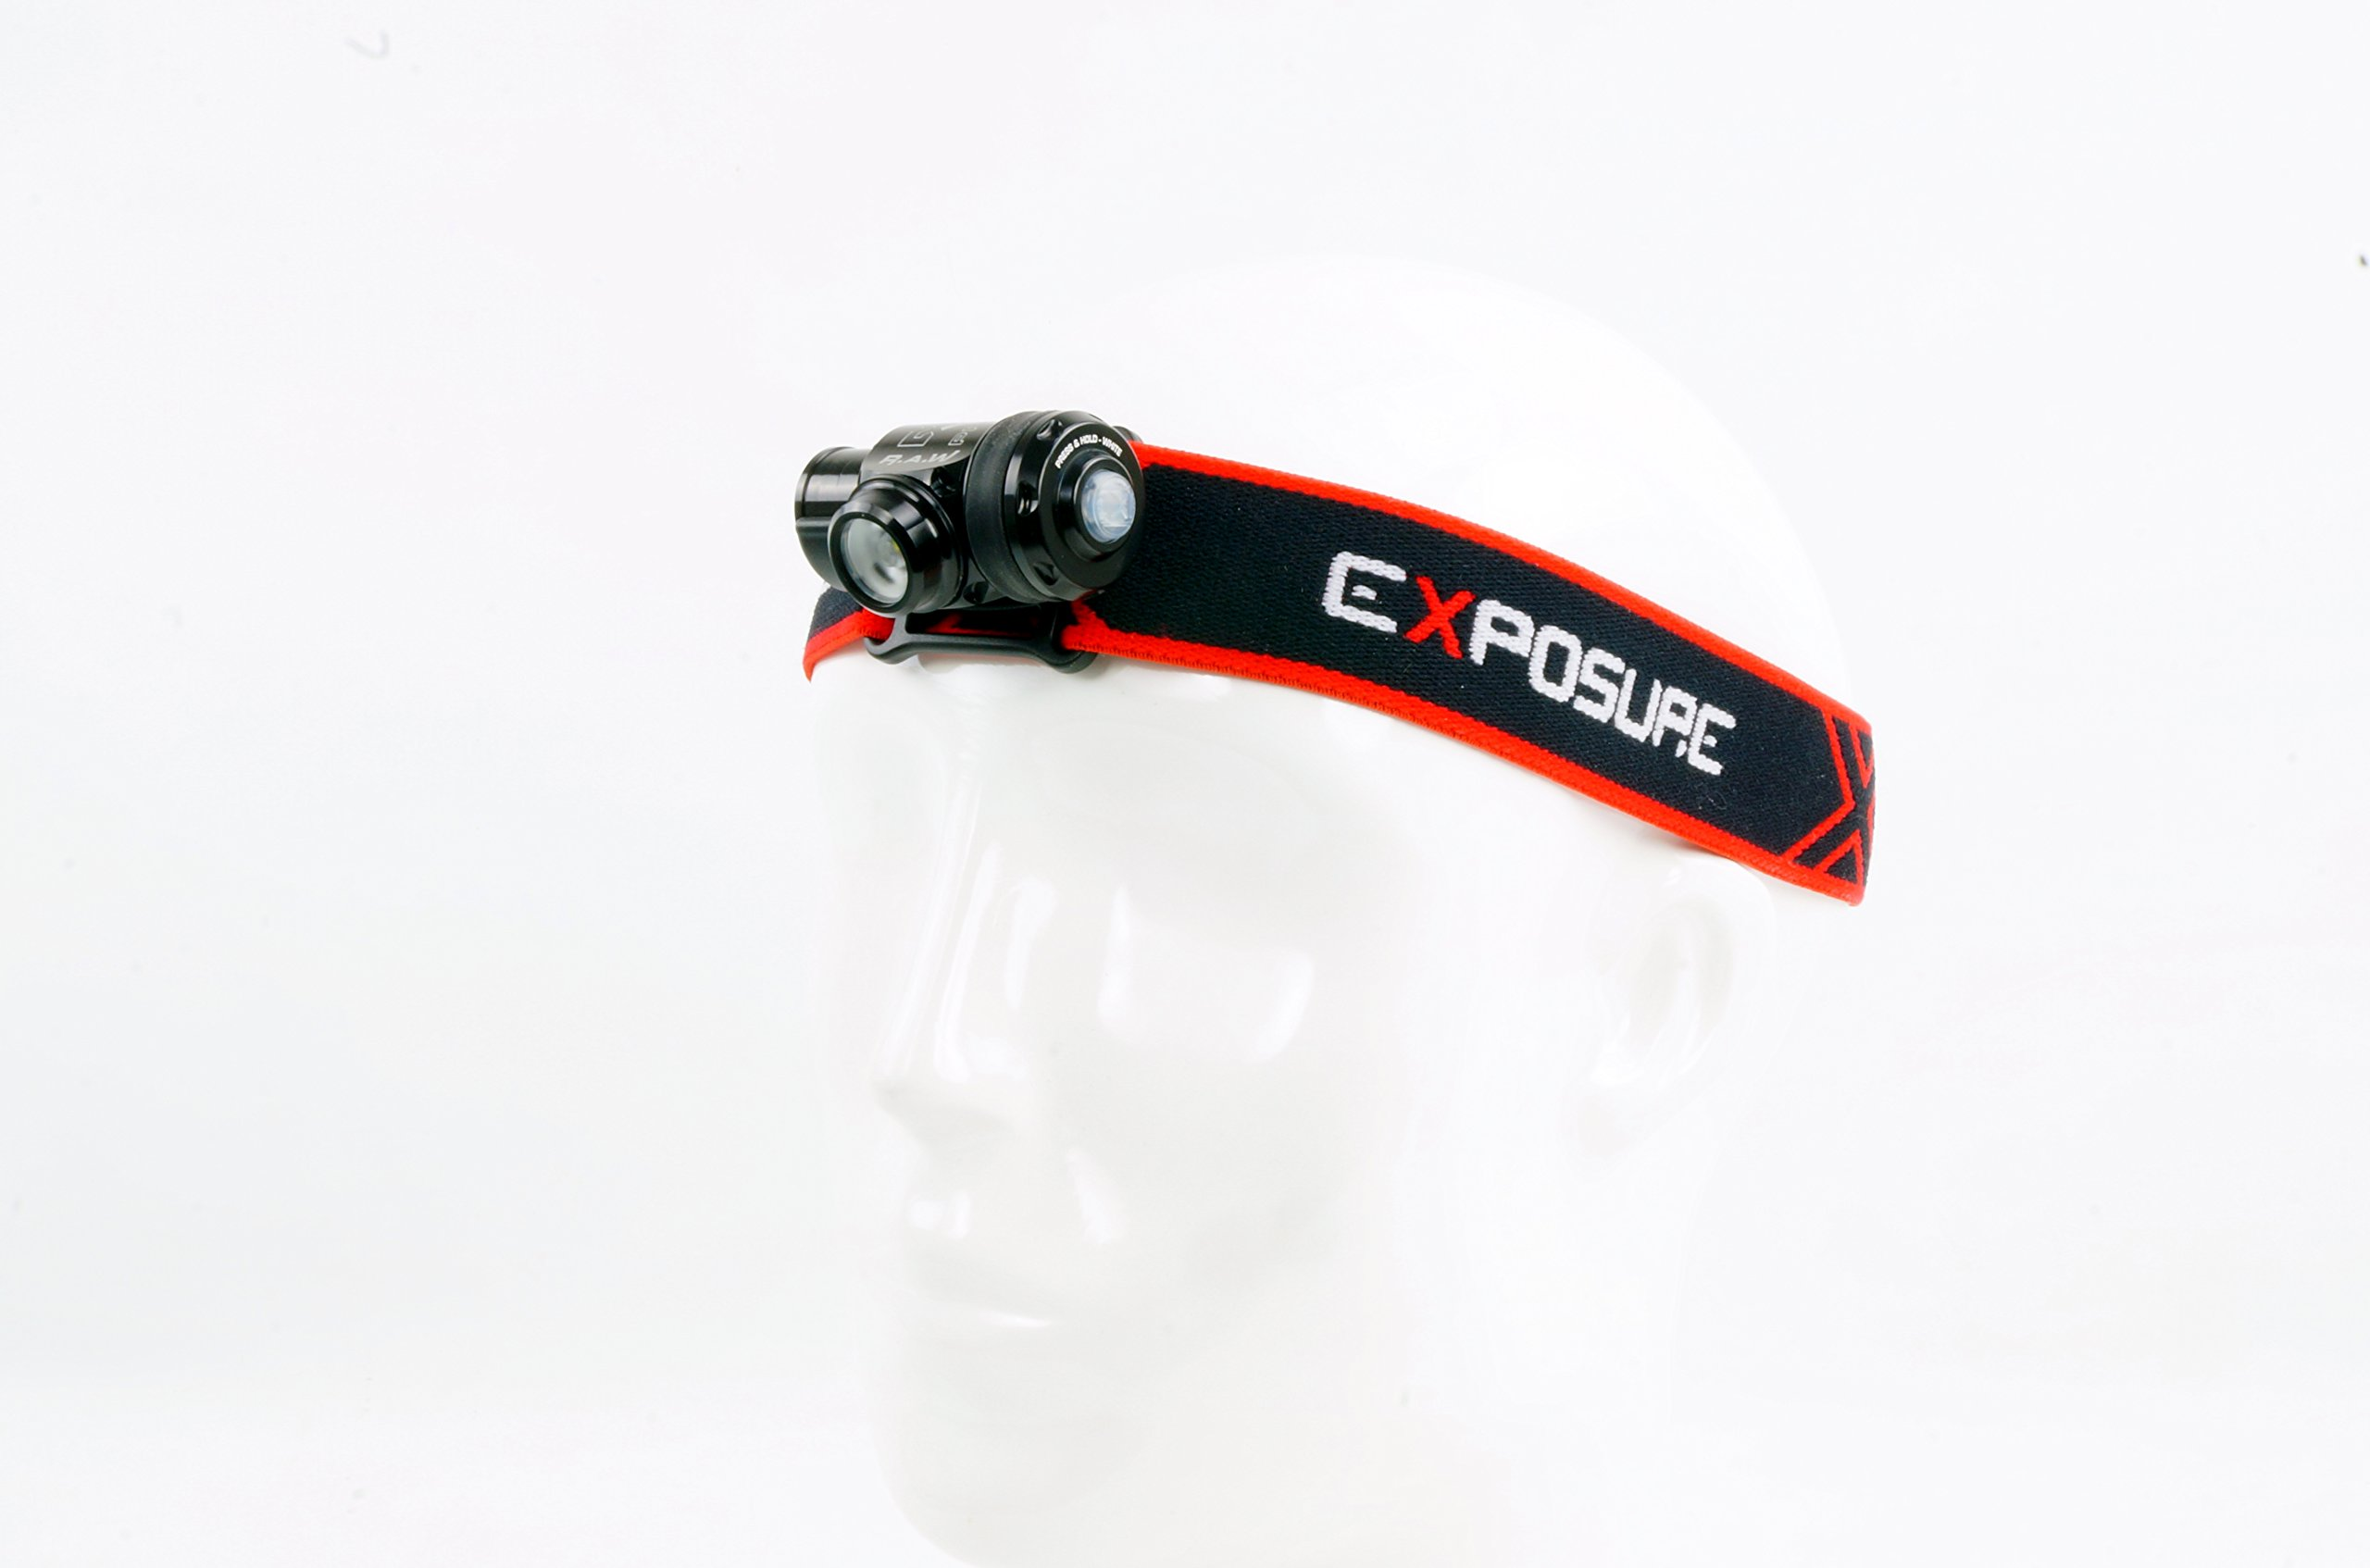 Exposure Lights R.A.W. PRO Edition 200 Lumen Red & White waterproof head Torch Made In Great Britain by Exposure Lights (Image #4)